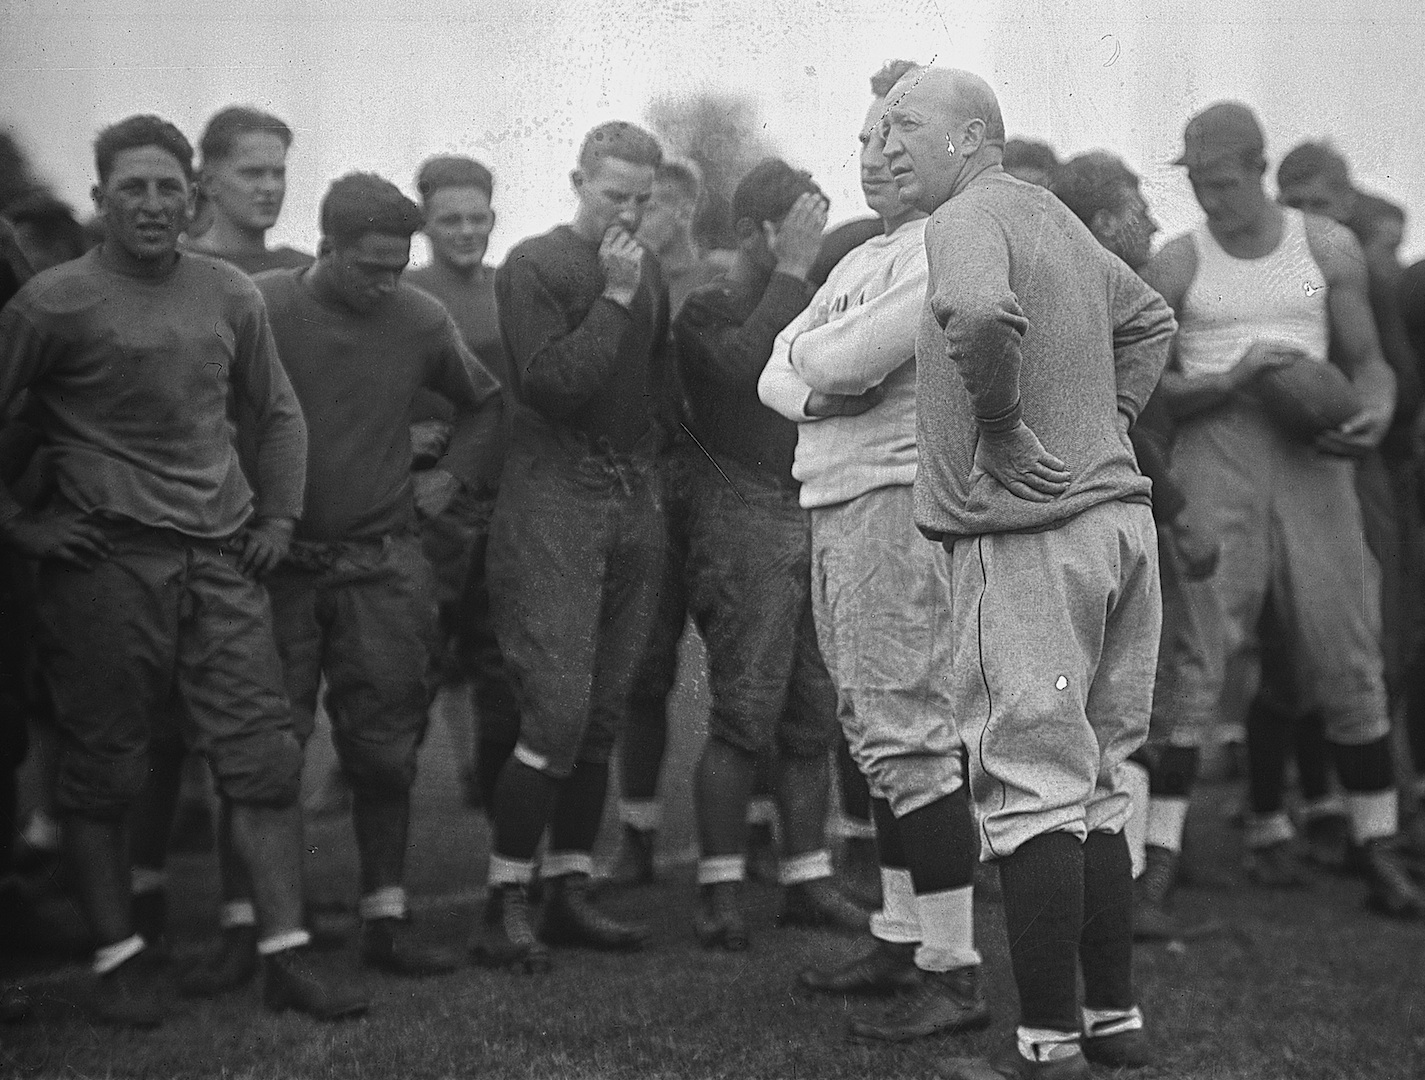 GBBY 45G/0382: Football Coach Knute Rockne at practice with players, c1920s.